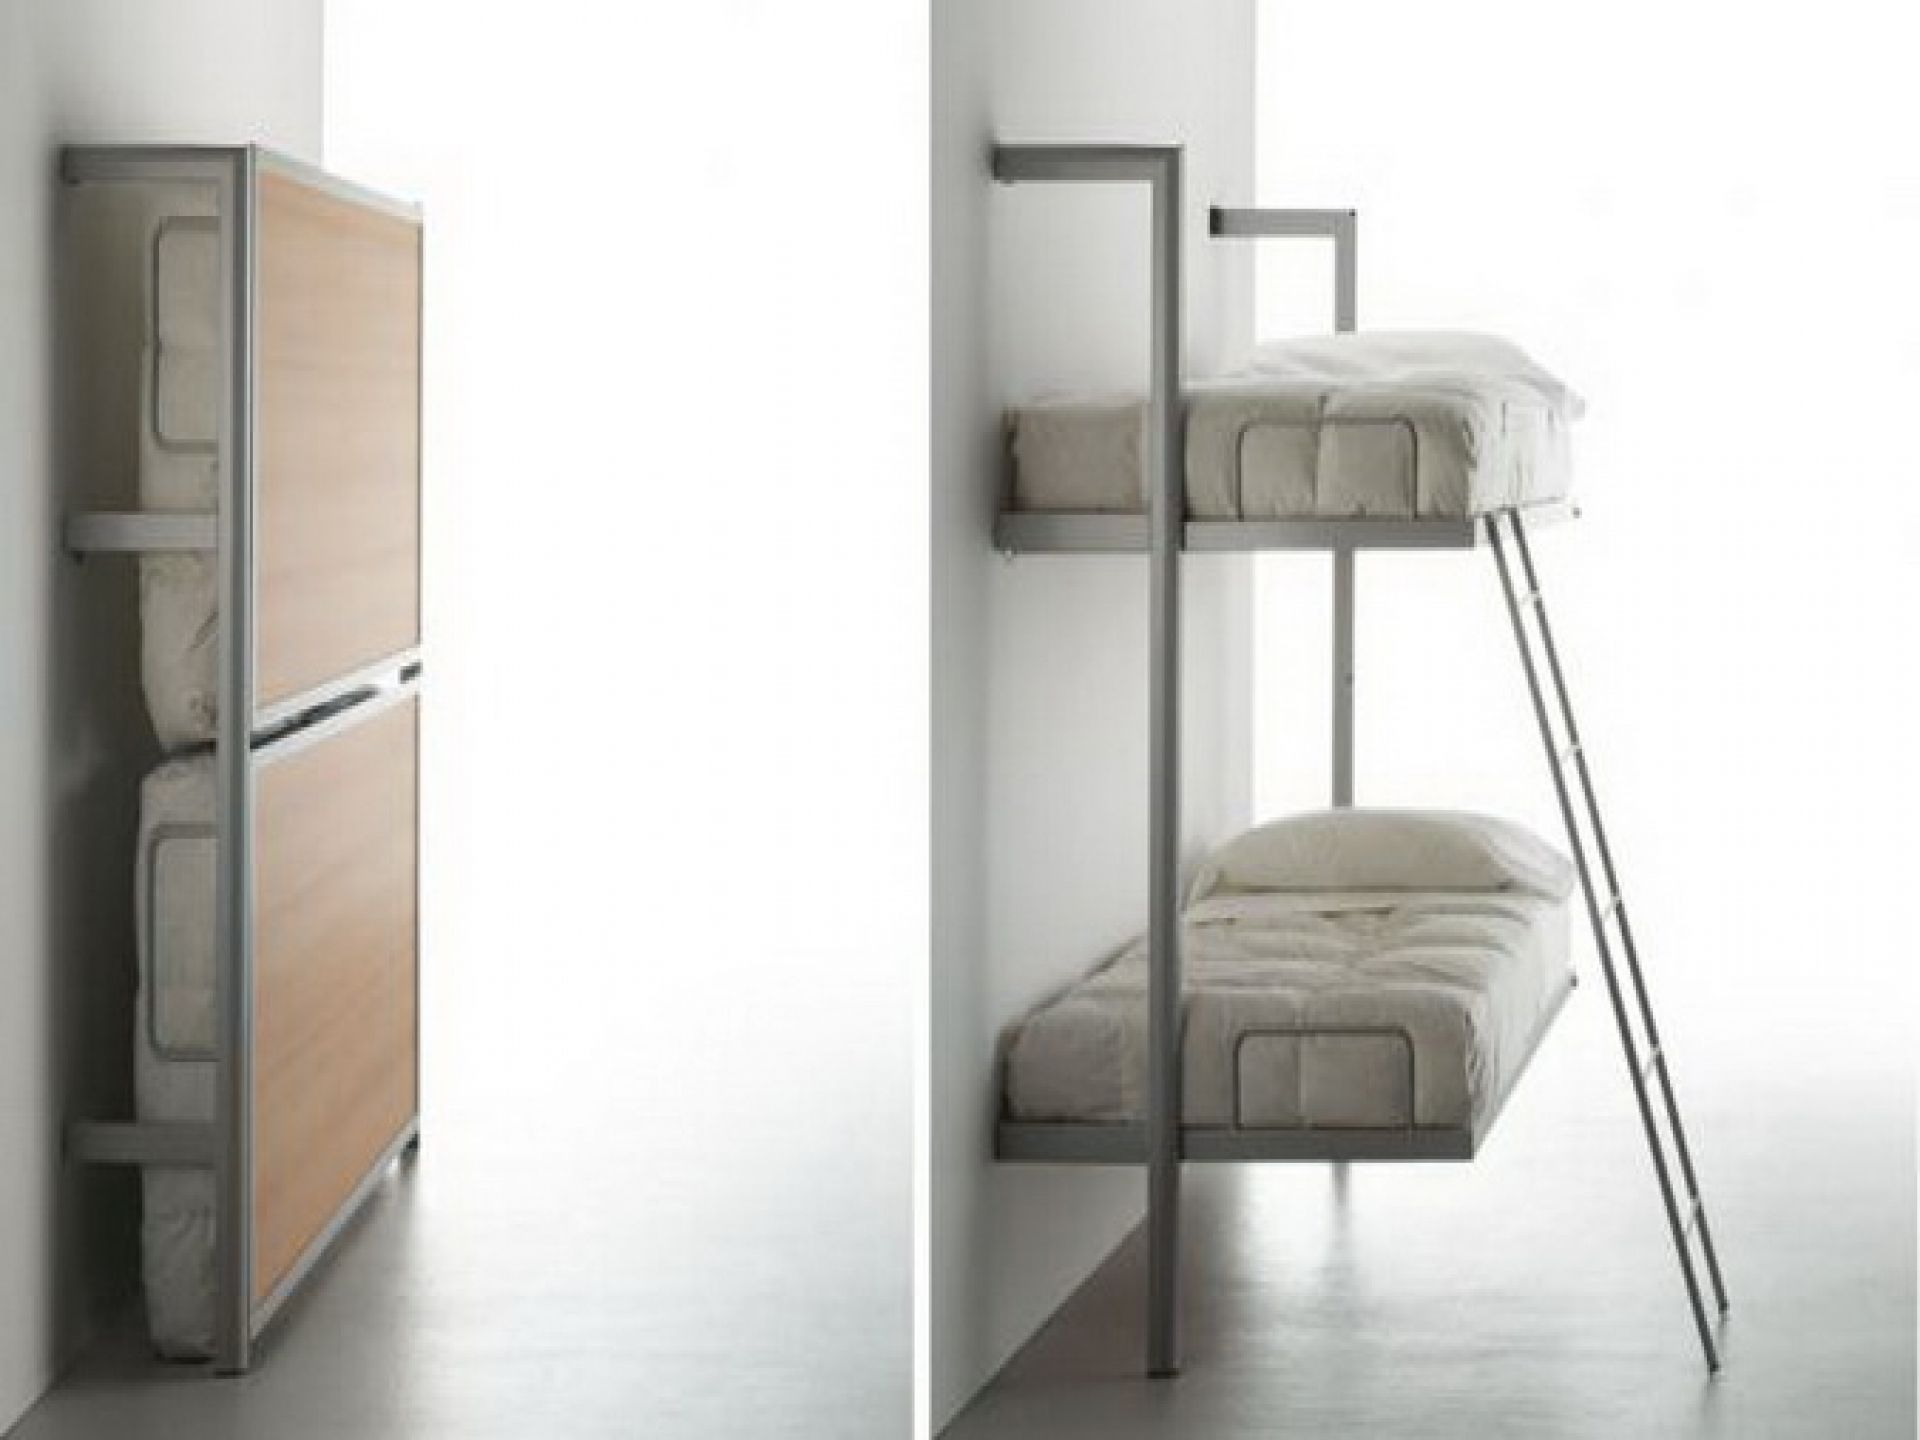 wall mounted bunk beds | Stylish Wall Mounted Bunk Beds ...